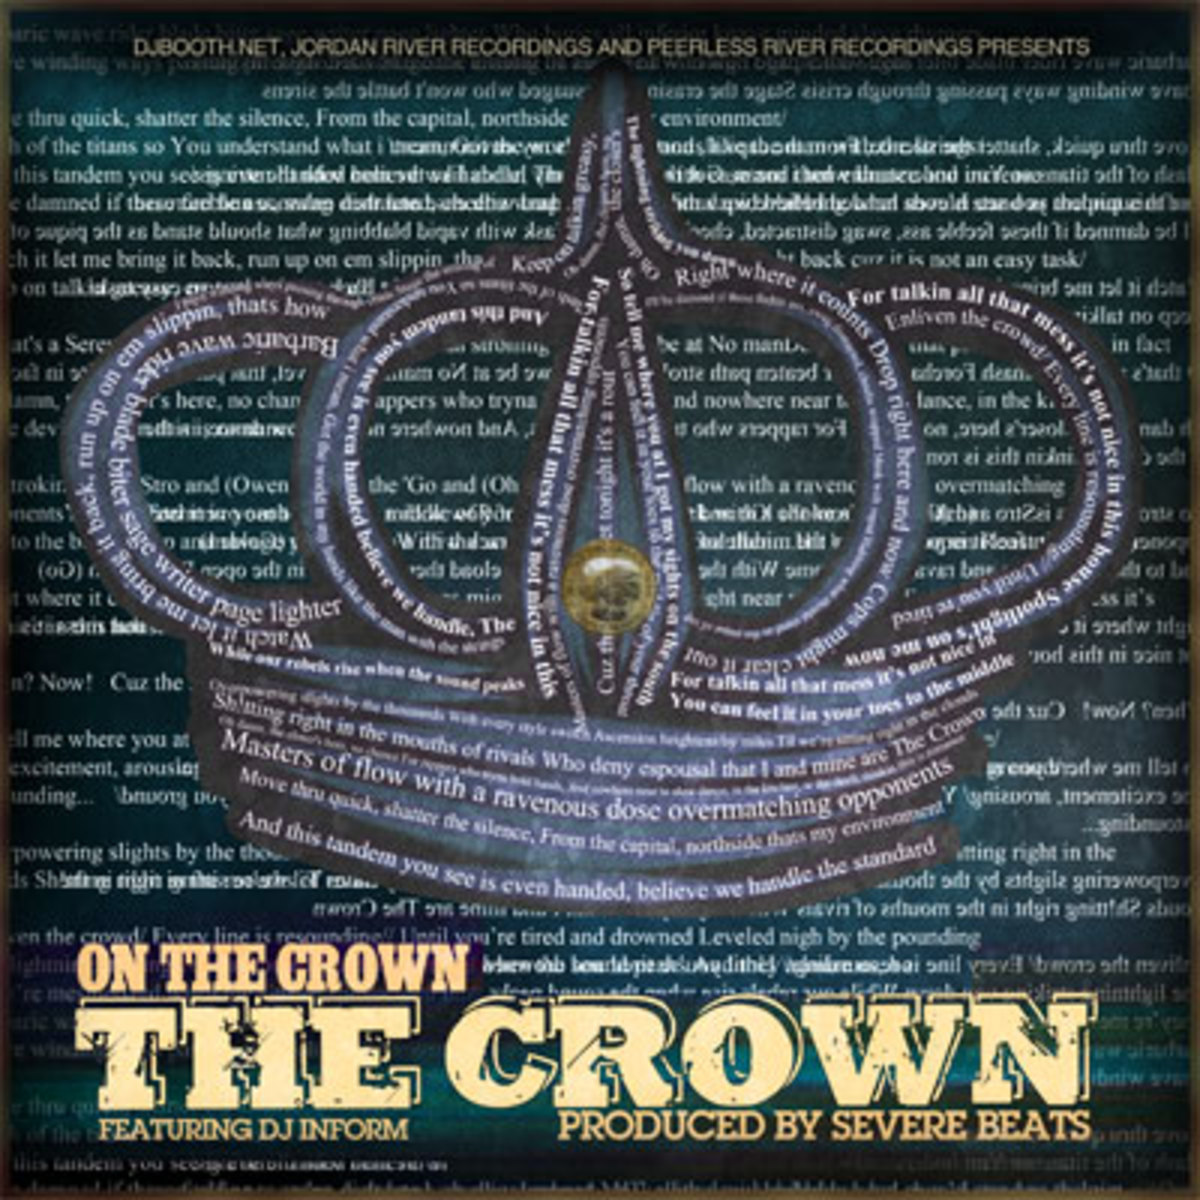 onthecrown-thecrown.jpg